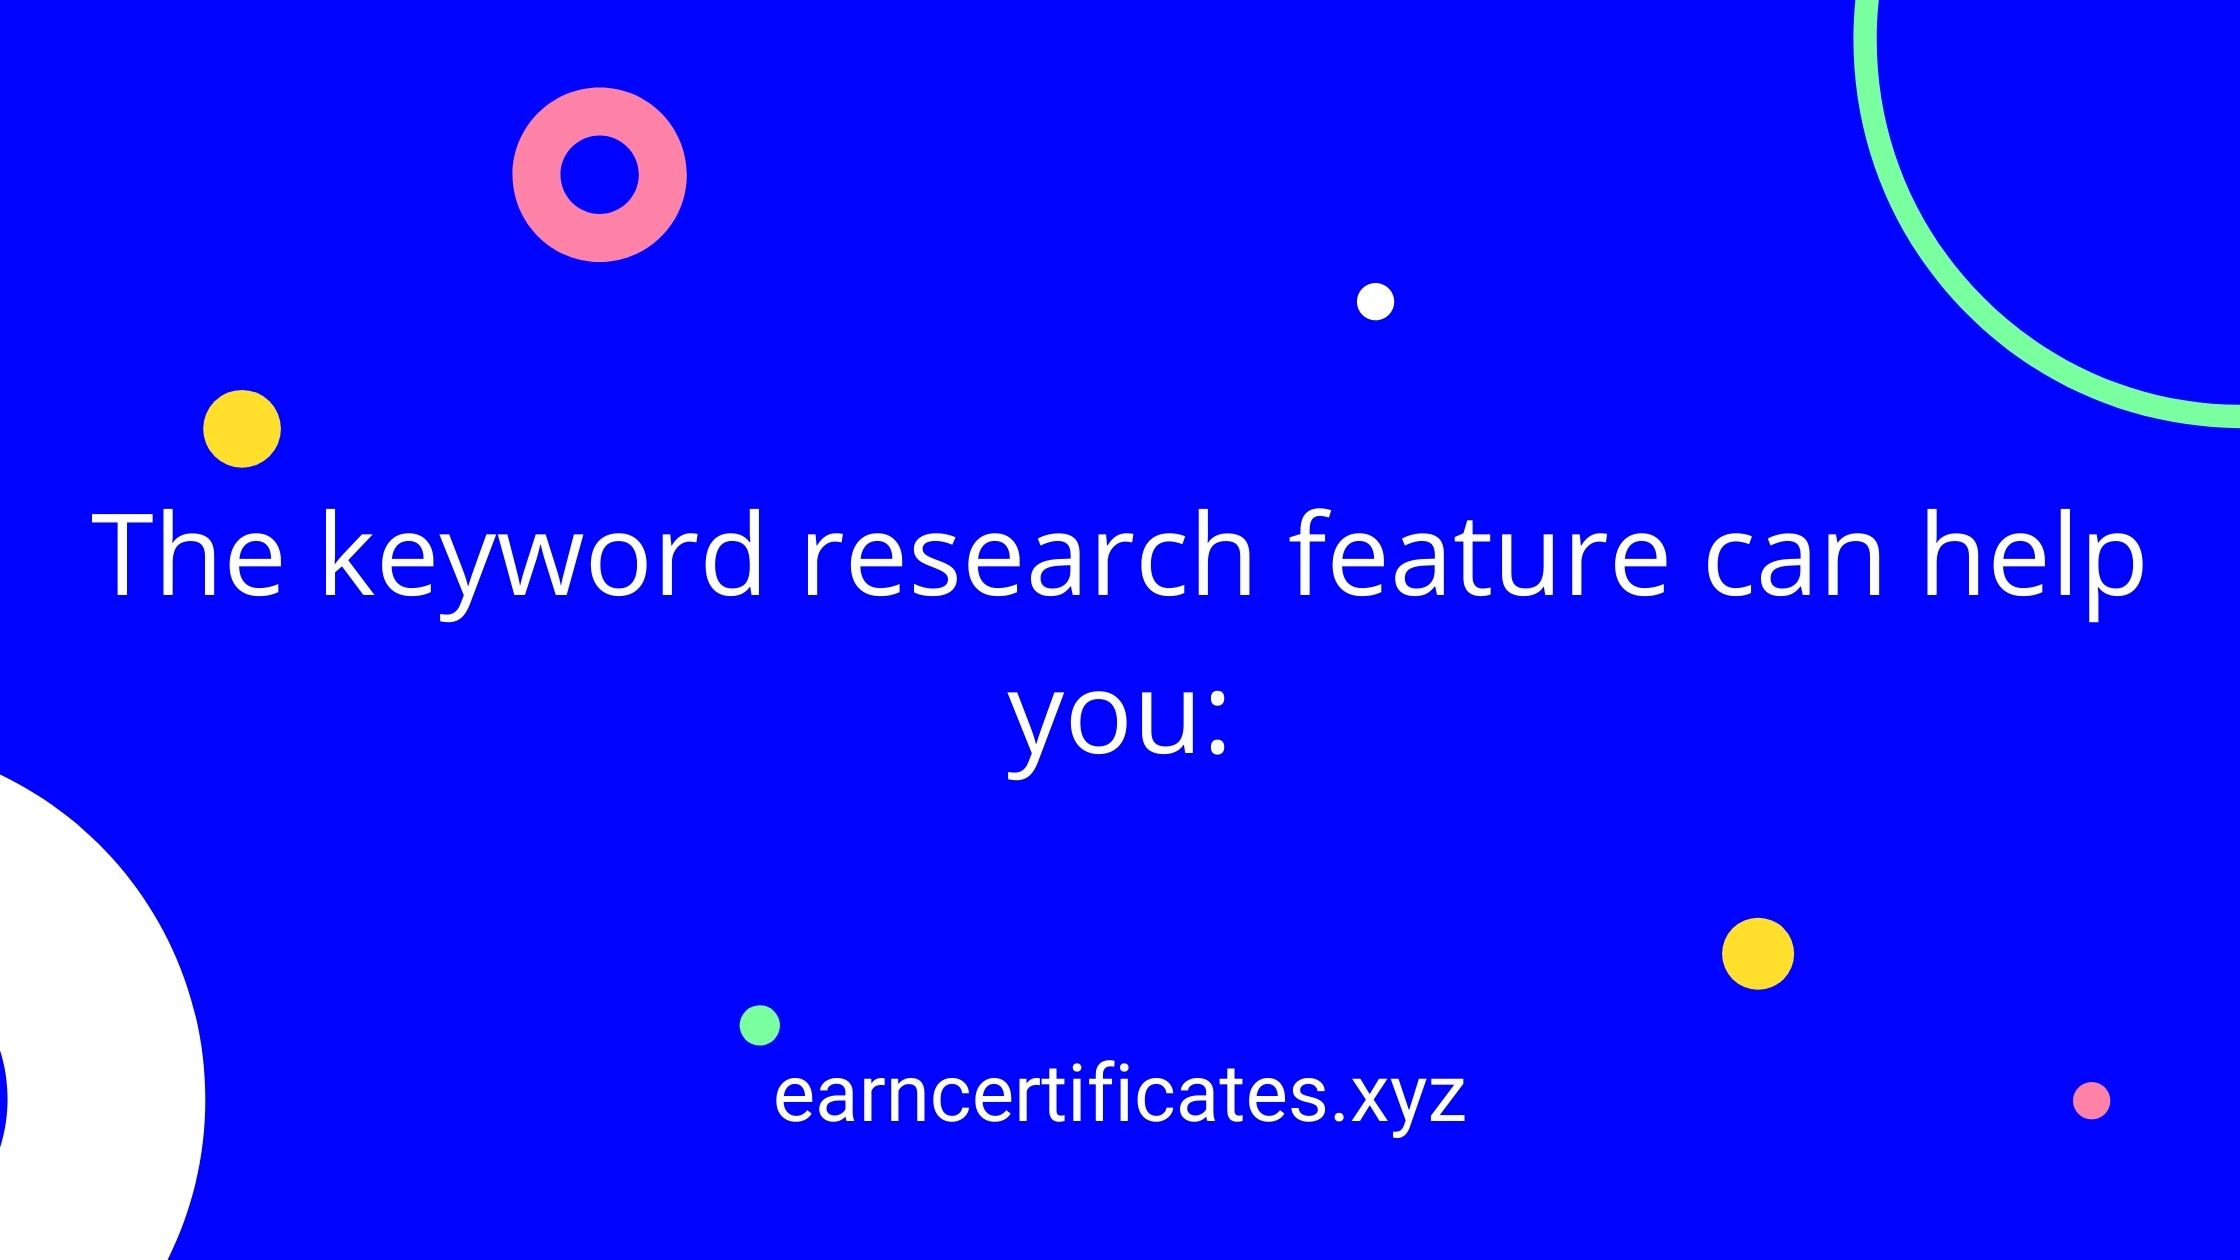 The keyword research feature can help you: